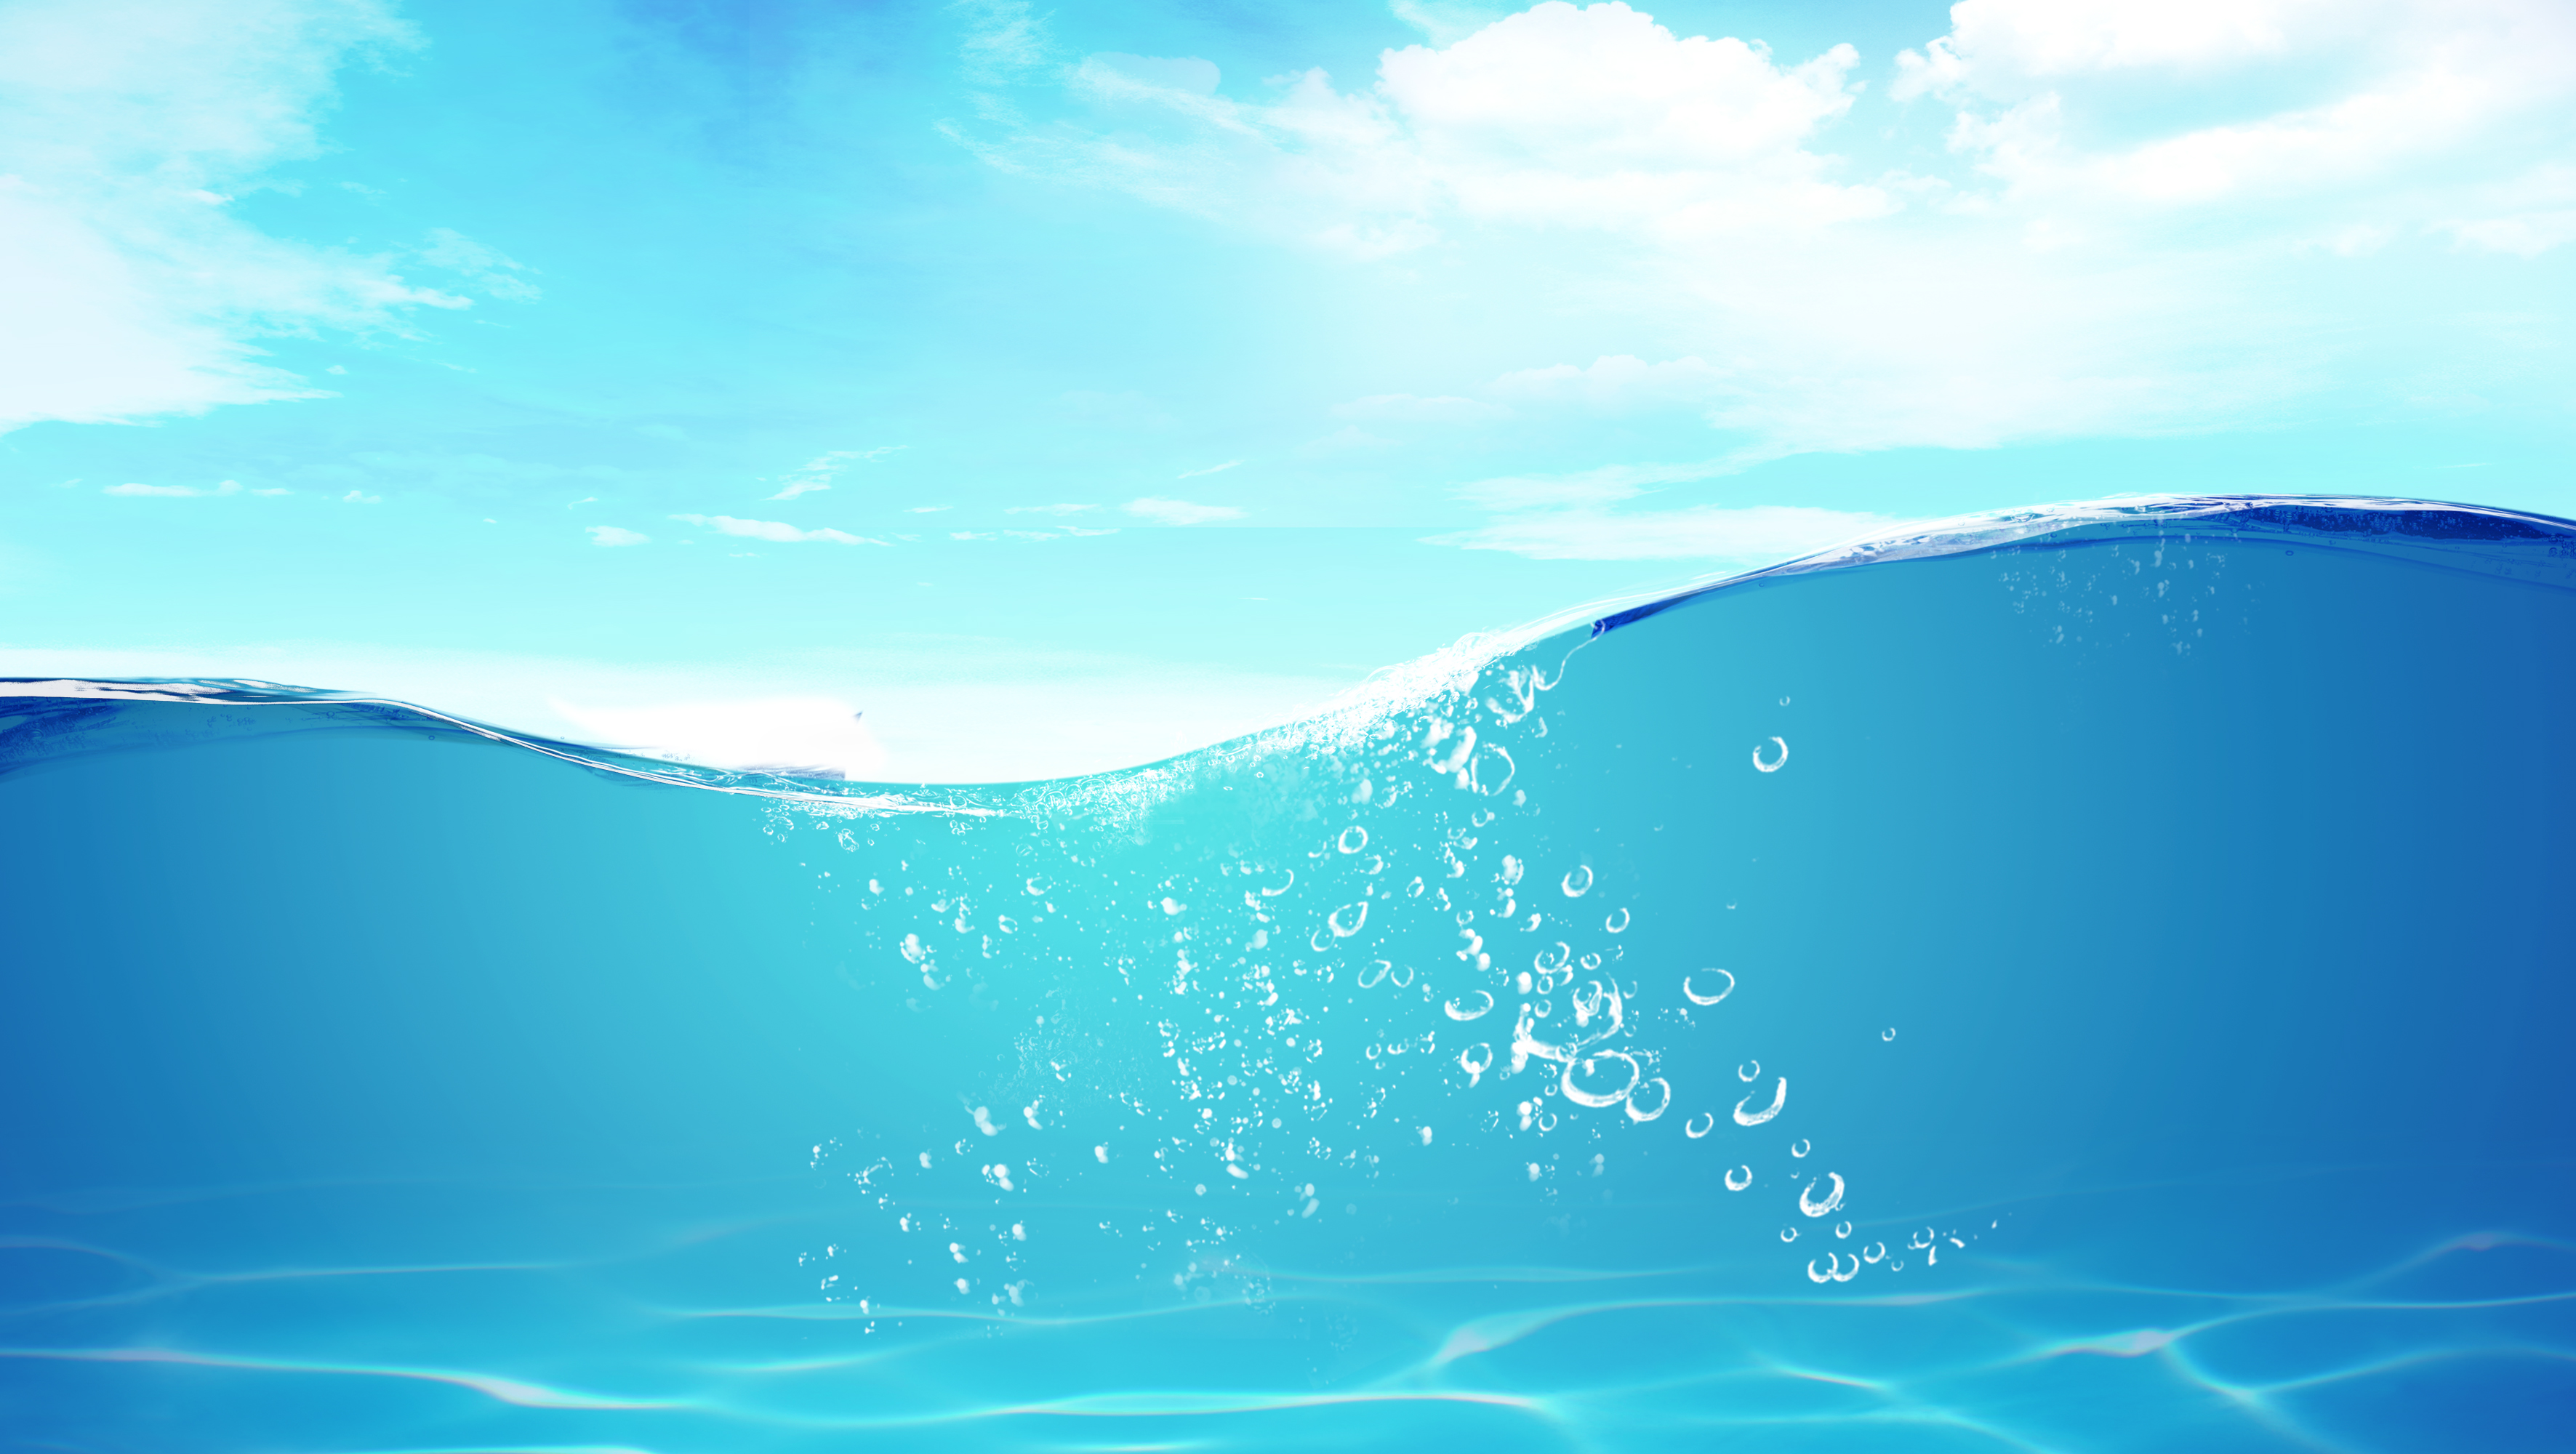 clear blue water waves background material  blue  water